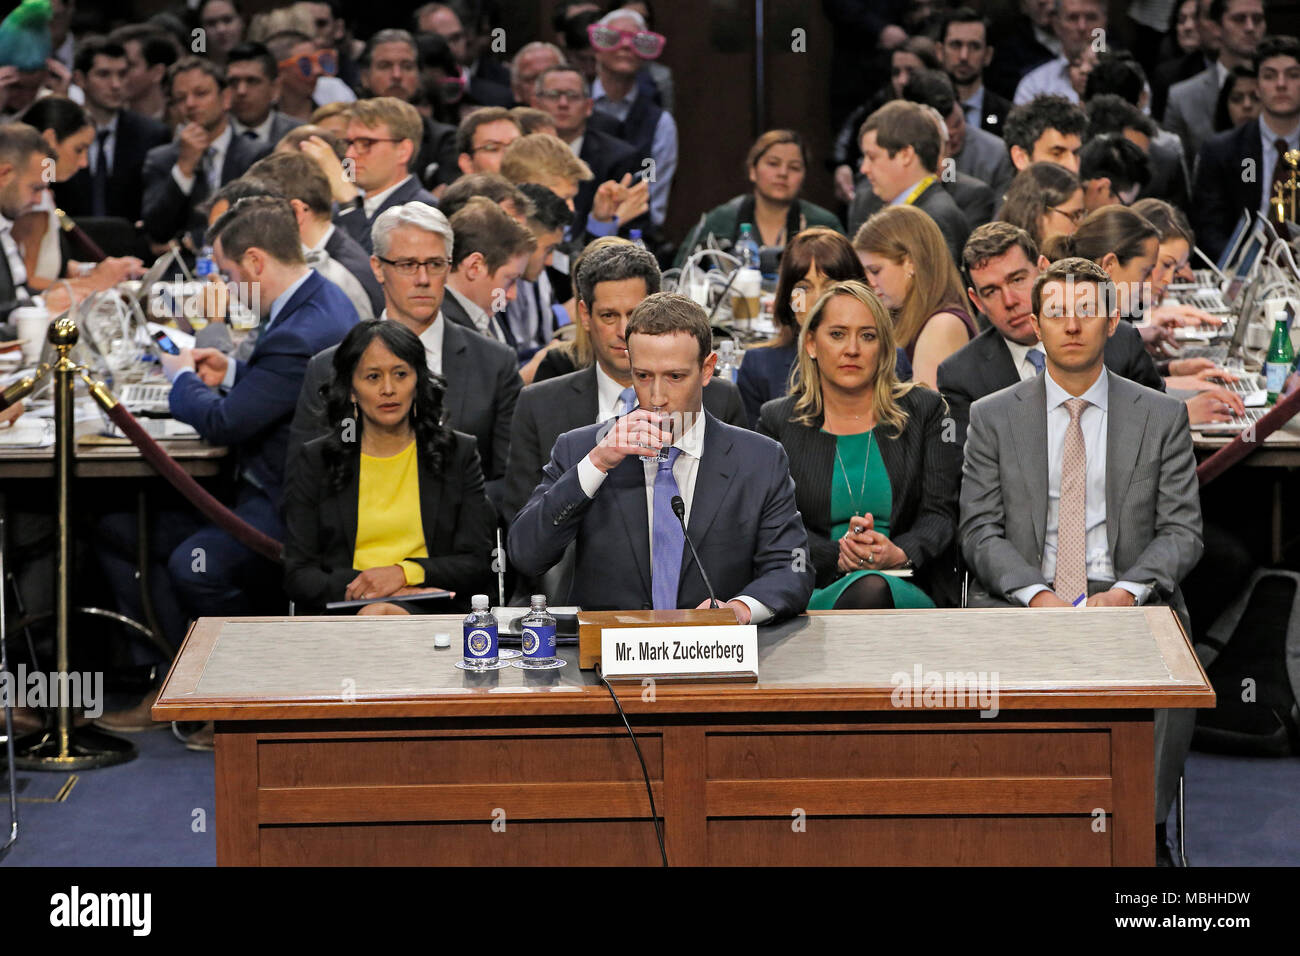 Die Kanzlei Tv Serie 2017 Crew United Facebook Ceo Stockfotos Facebook Ceo Bilder Alamy